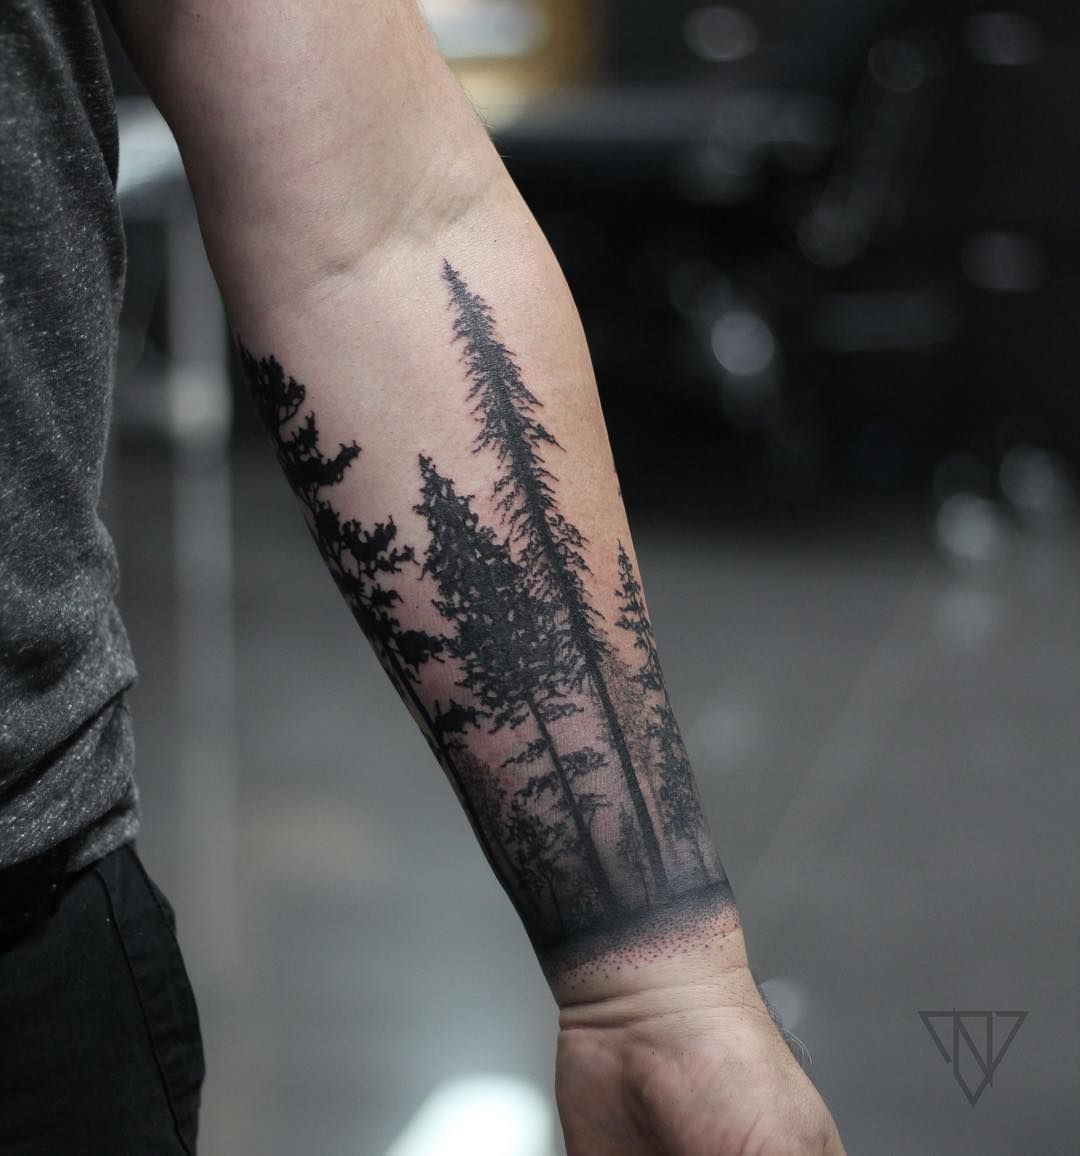 tattoo on arm - photo #46